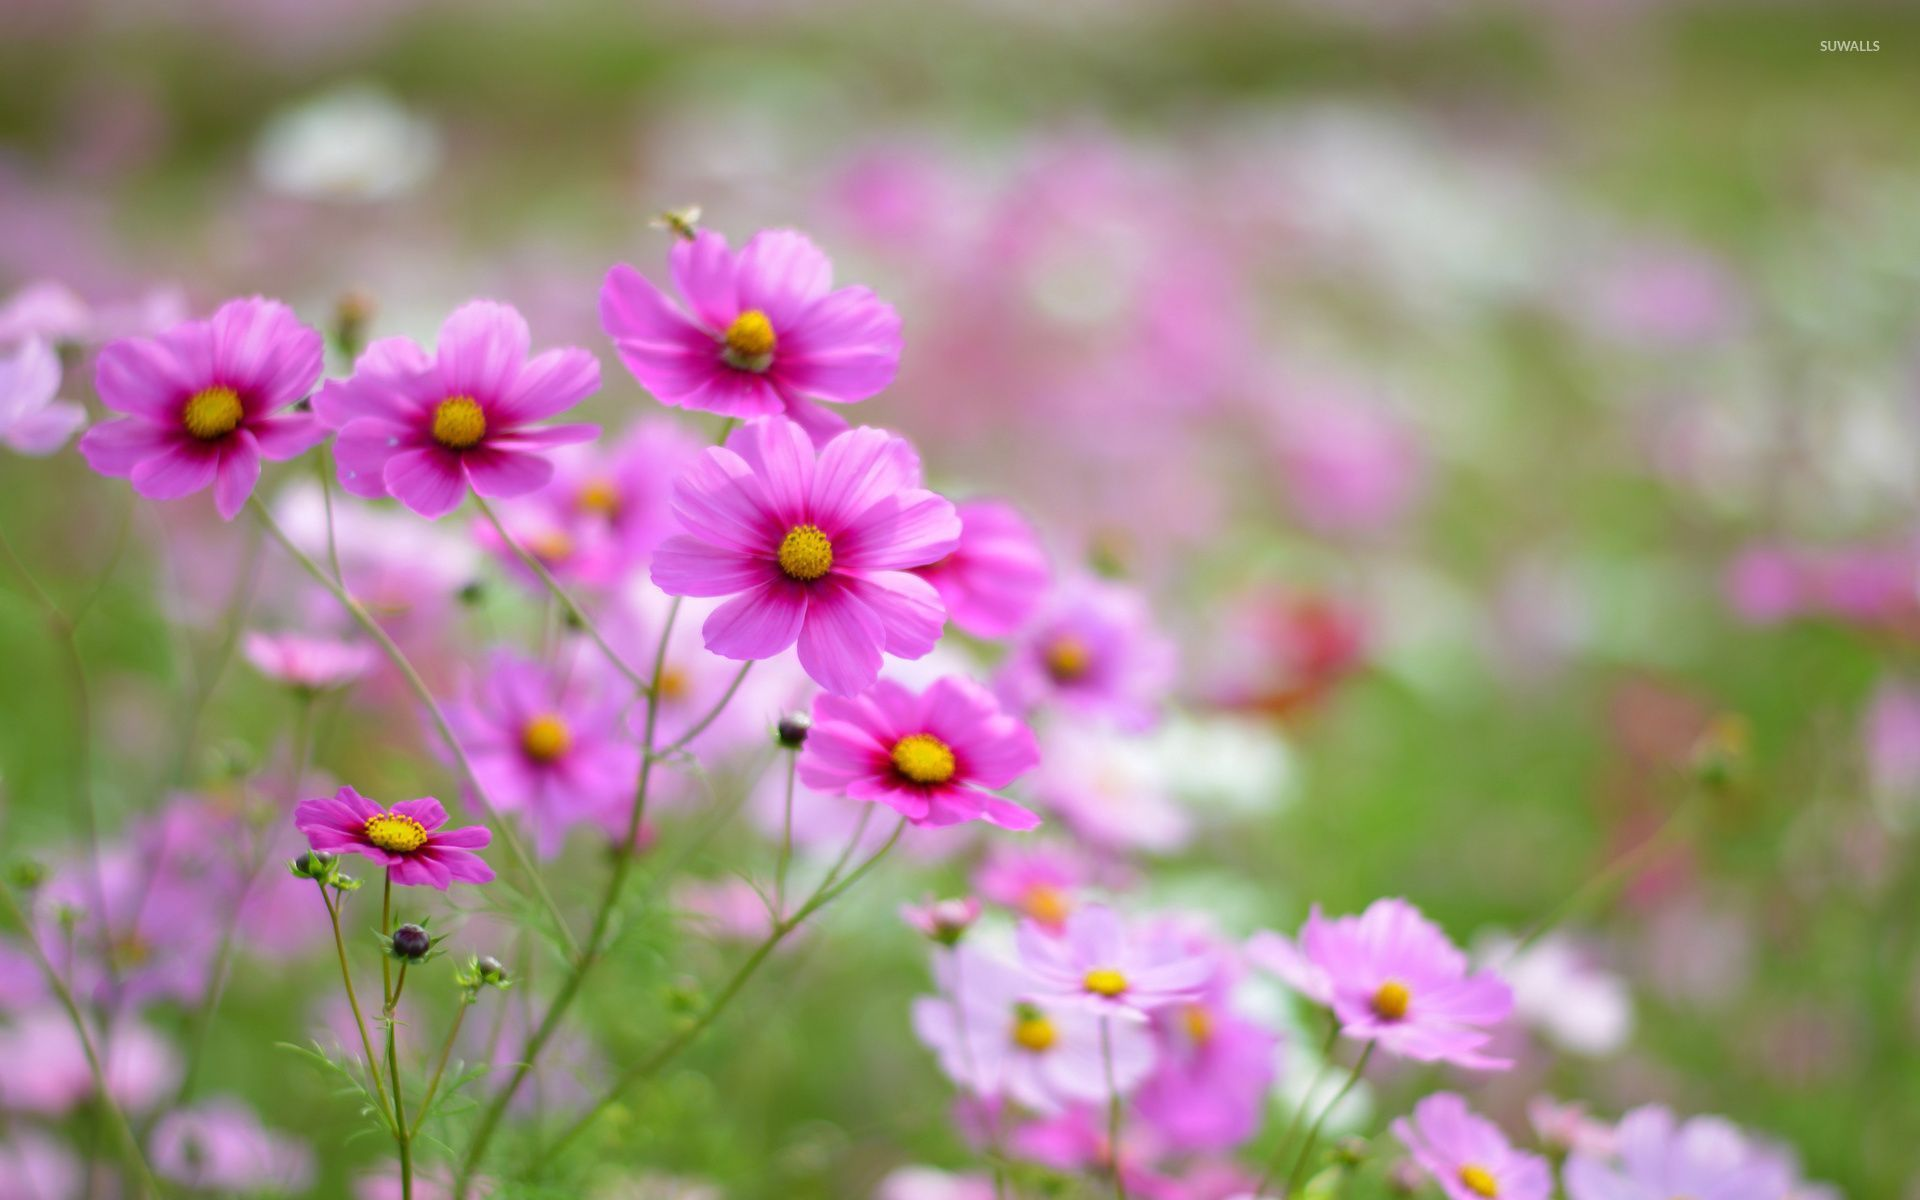 Pink cosmos 2 wallpaper flower wallpapers 32993 pink cosmos 2 wallpaper mightylinksfo Image collections